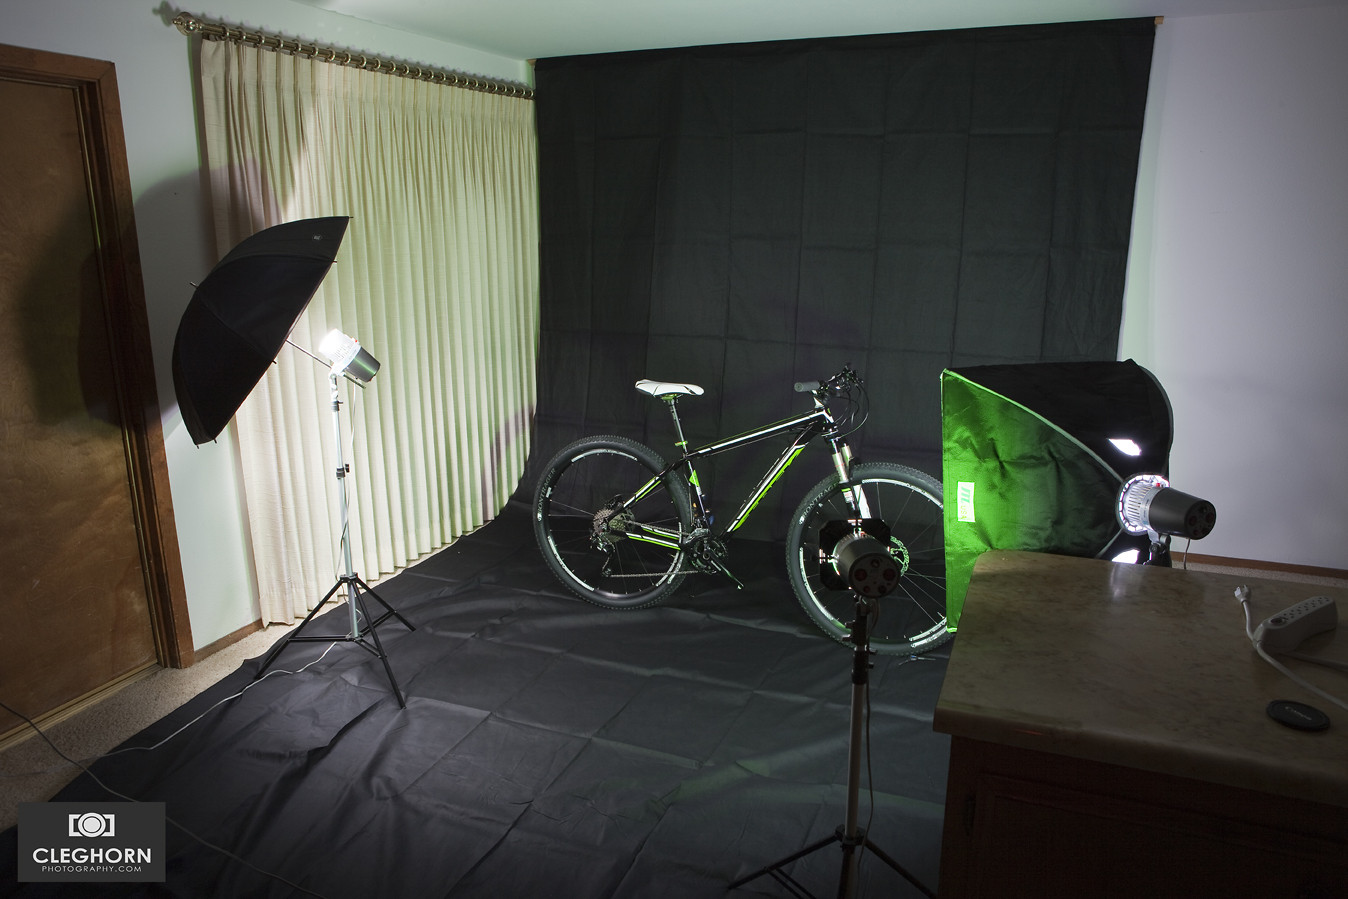 New studio lighting! - Cleghorn Photography - Mountain Biking Pictures - Vital MTB